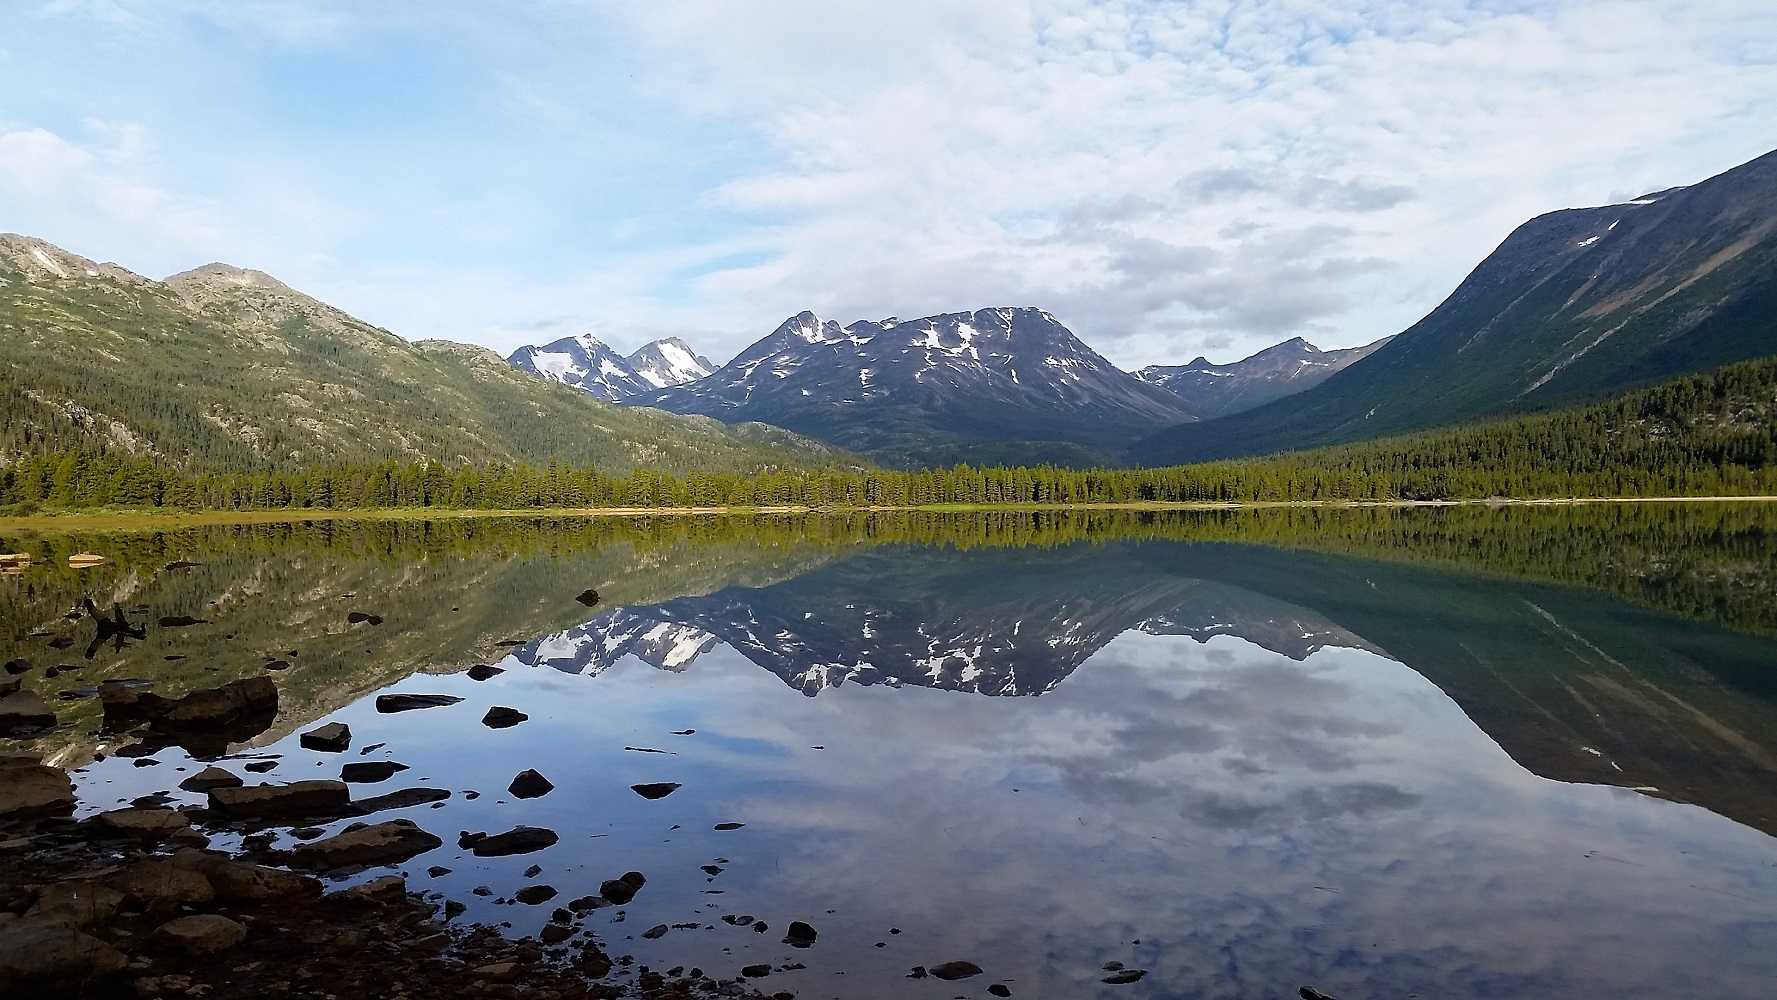 PVT Canada_Lily's road_Chilkoot trail_Lac Lindeman